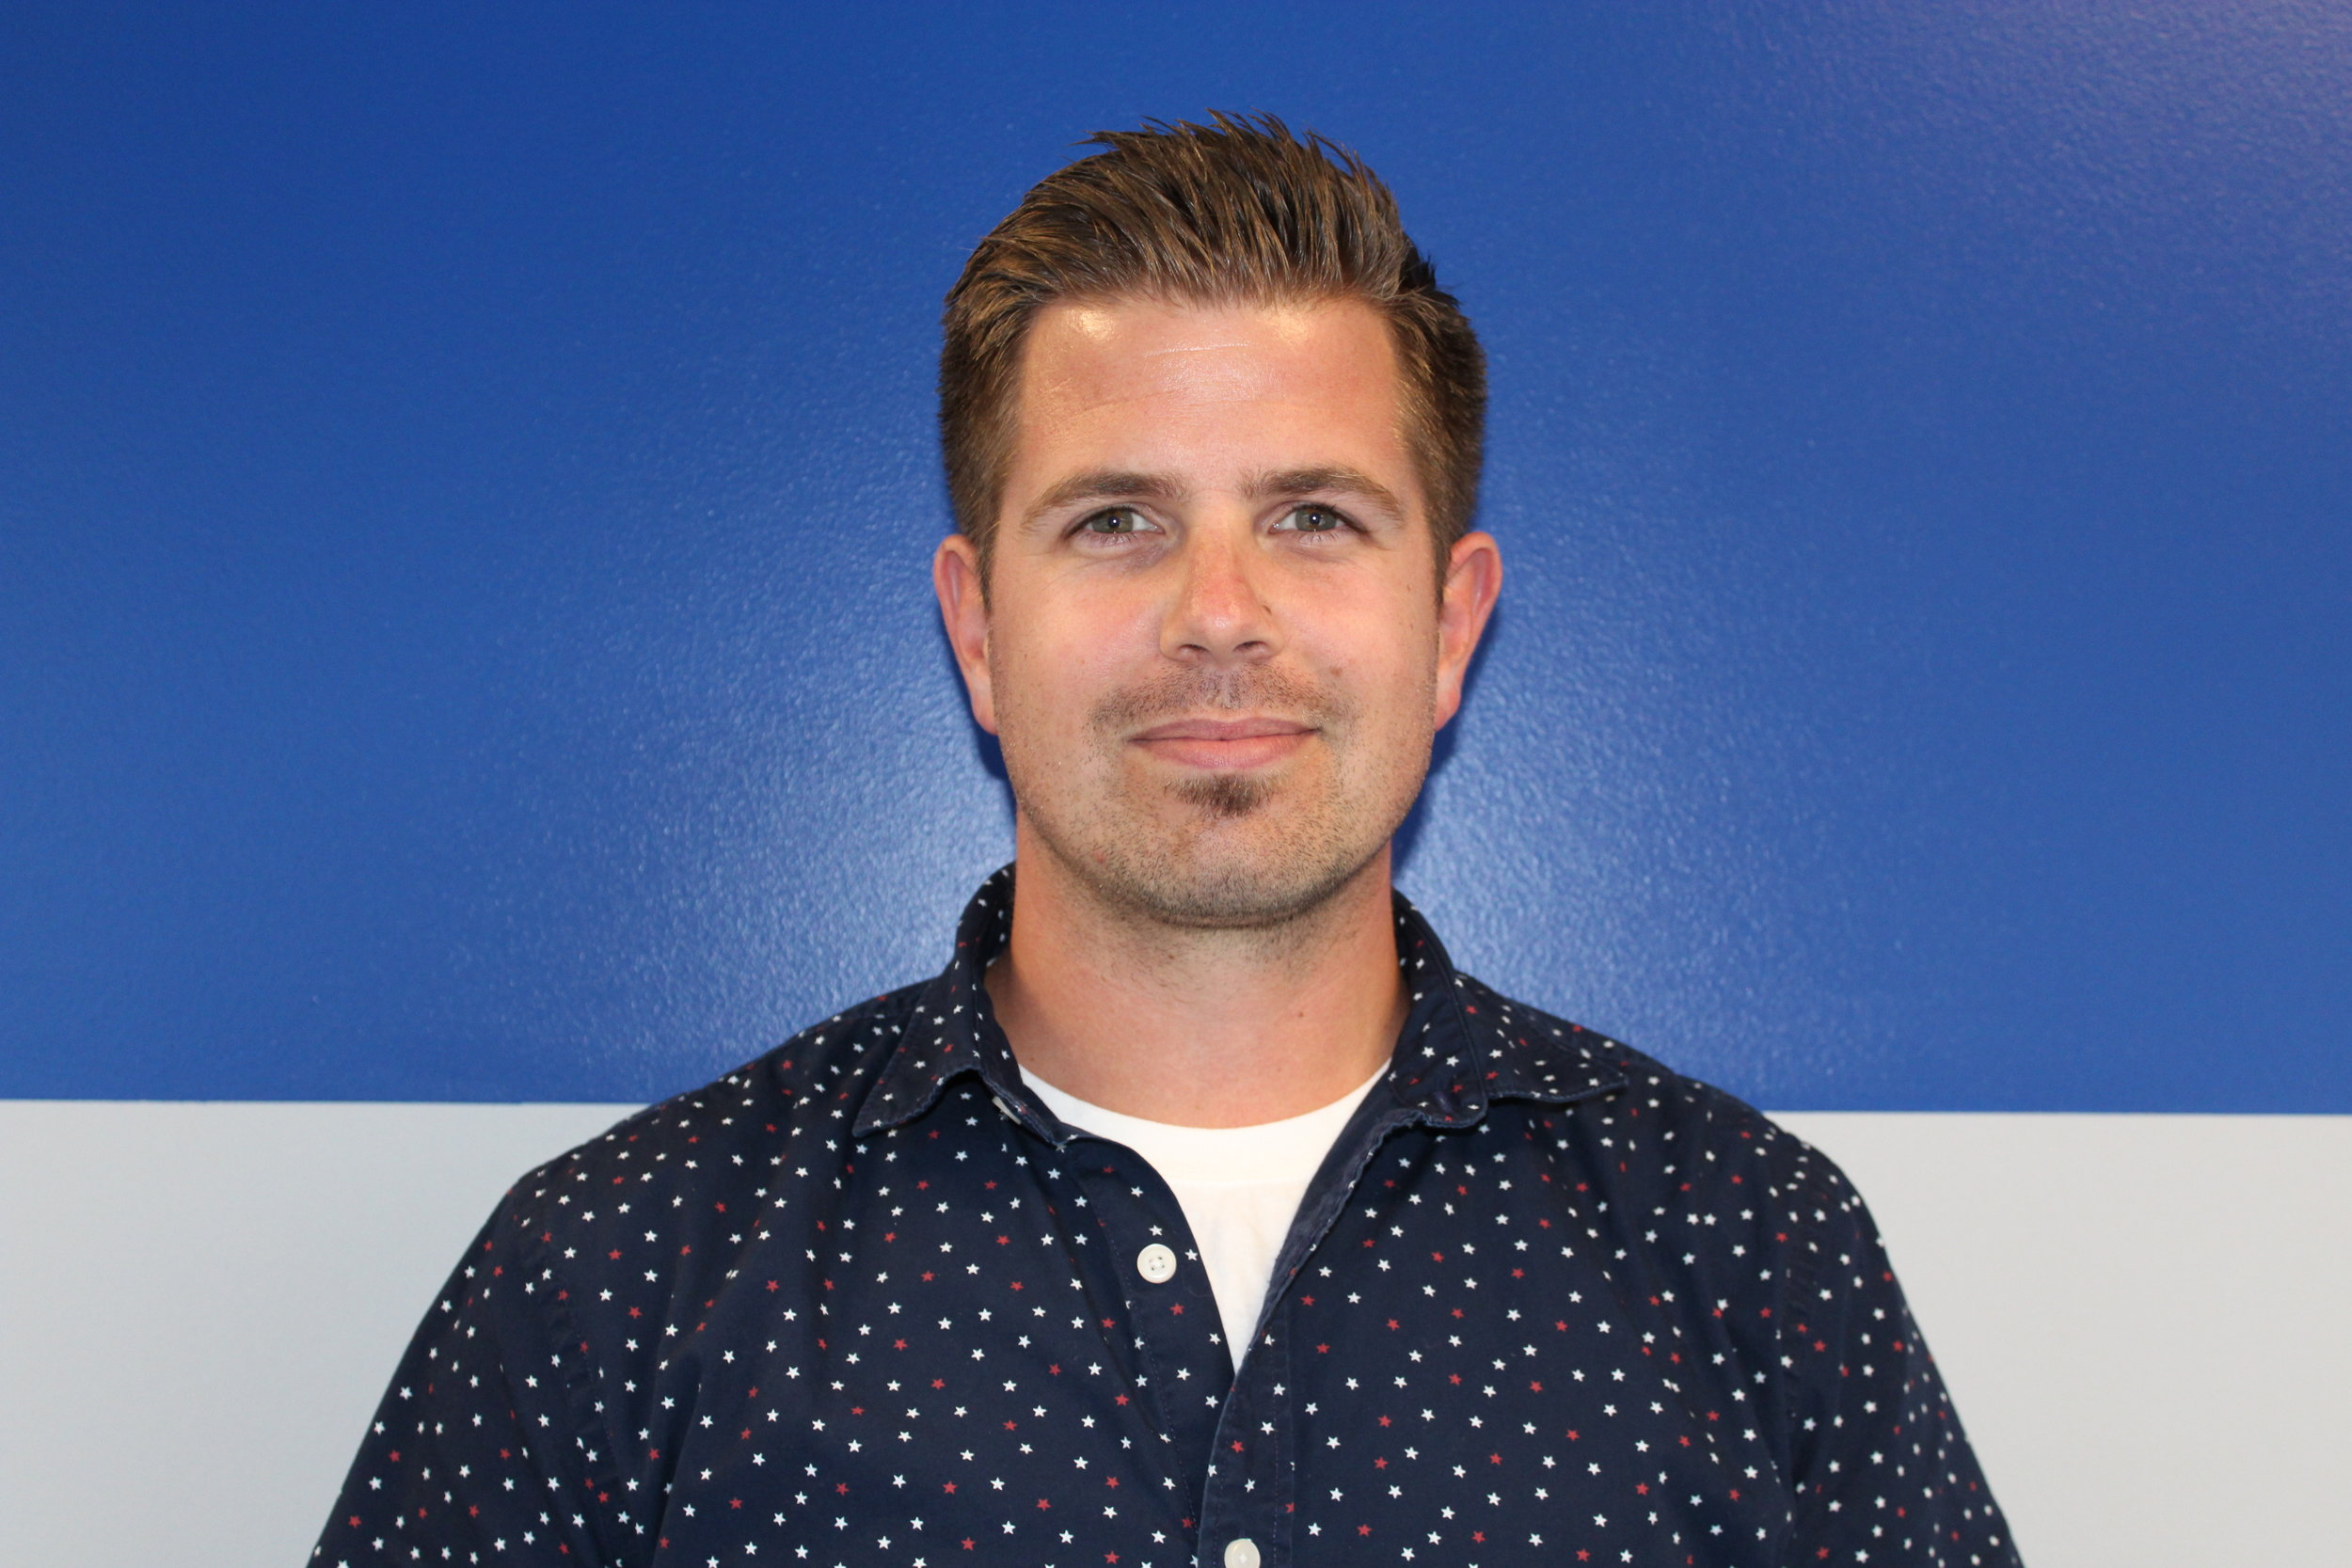 Chris Rorick - Senior Project Manager - Chris graduated from Purdue University in 2008 with a bachelor's degree in Building…READ MORE